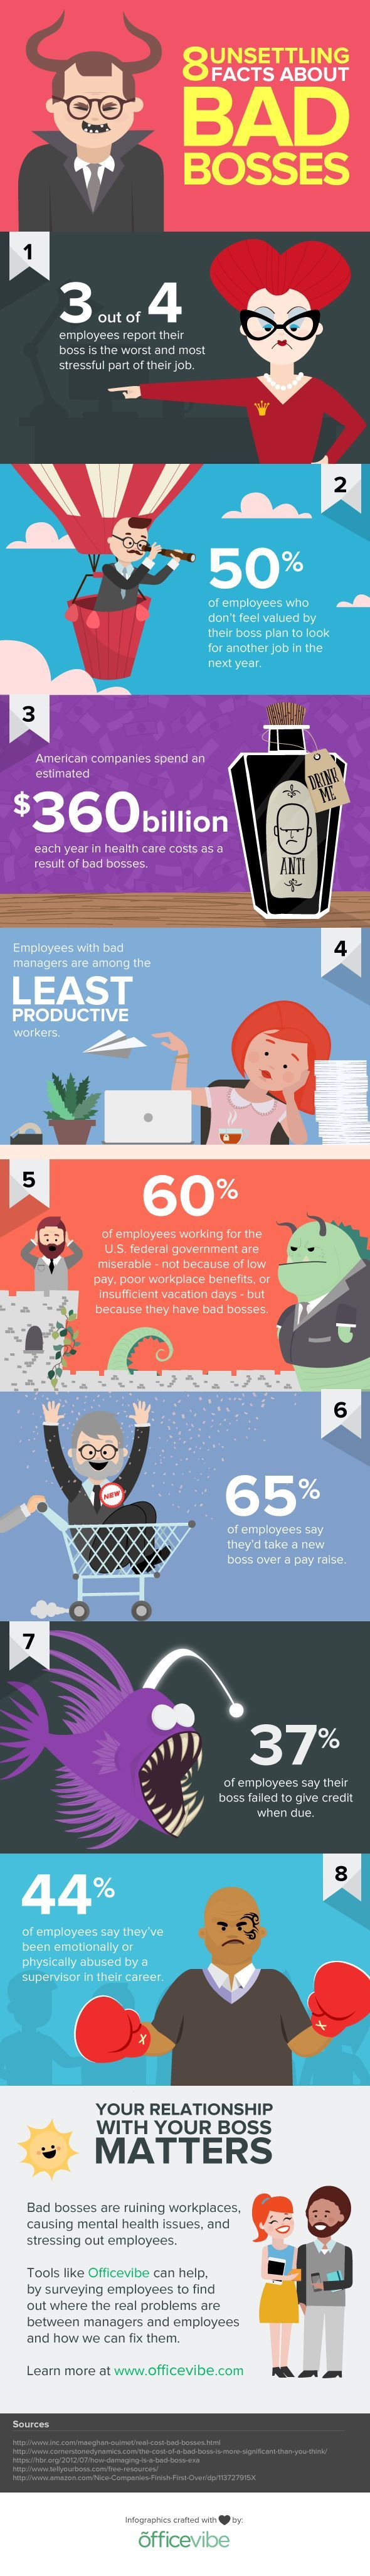 8 Unsettling Facts about Bad Bosses - 3 out of 4 employees report their boss is the worst and most stressful part of their job - Inspiring And Life changing Infographics